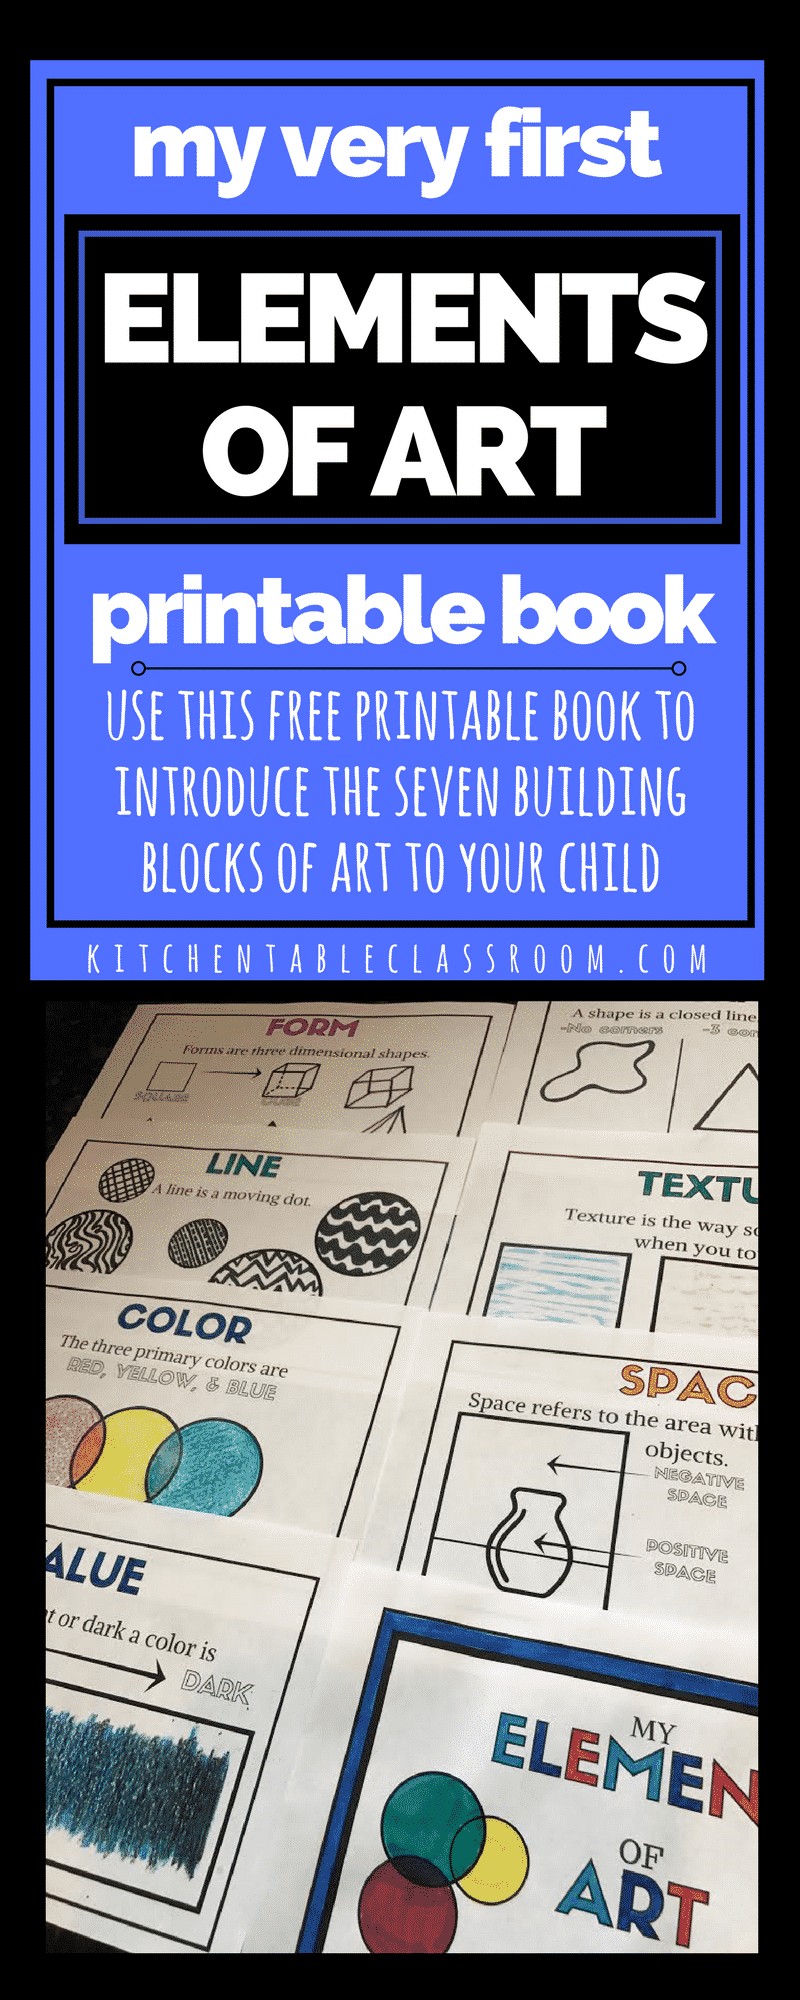 Elements Of Art For Kids : Element book pinterest the kitchen table classroom